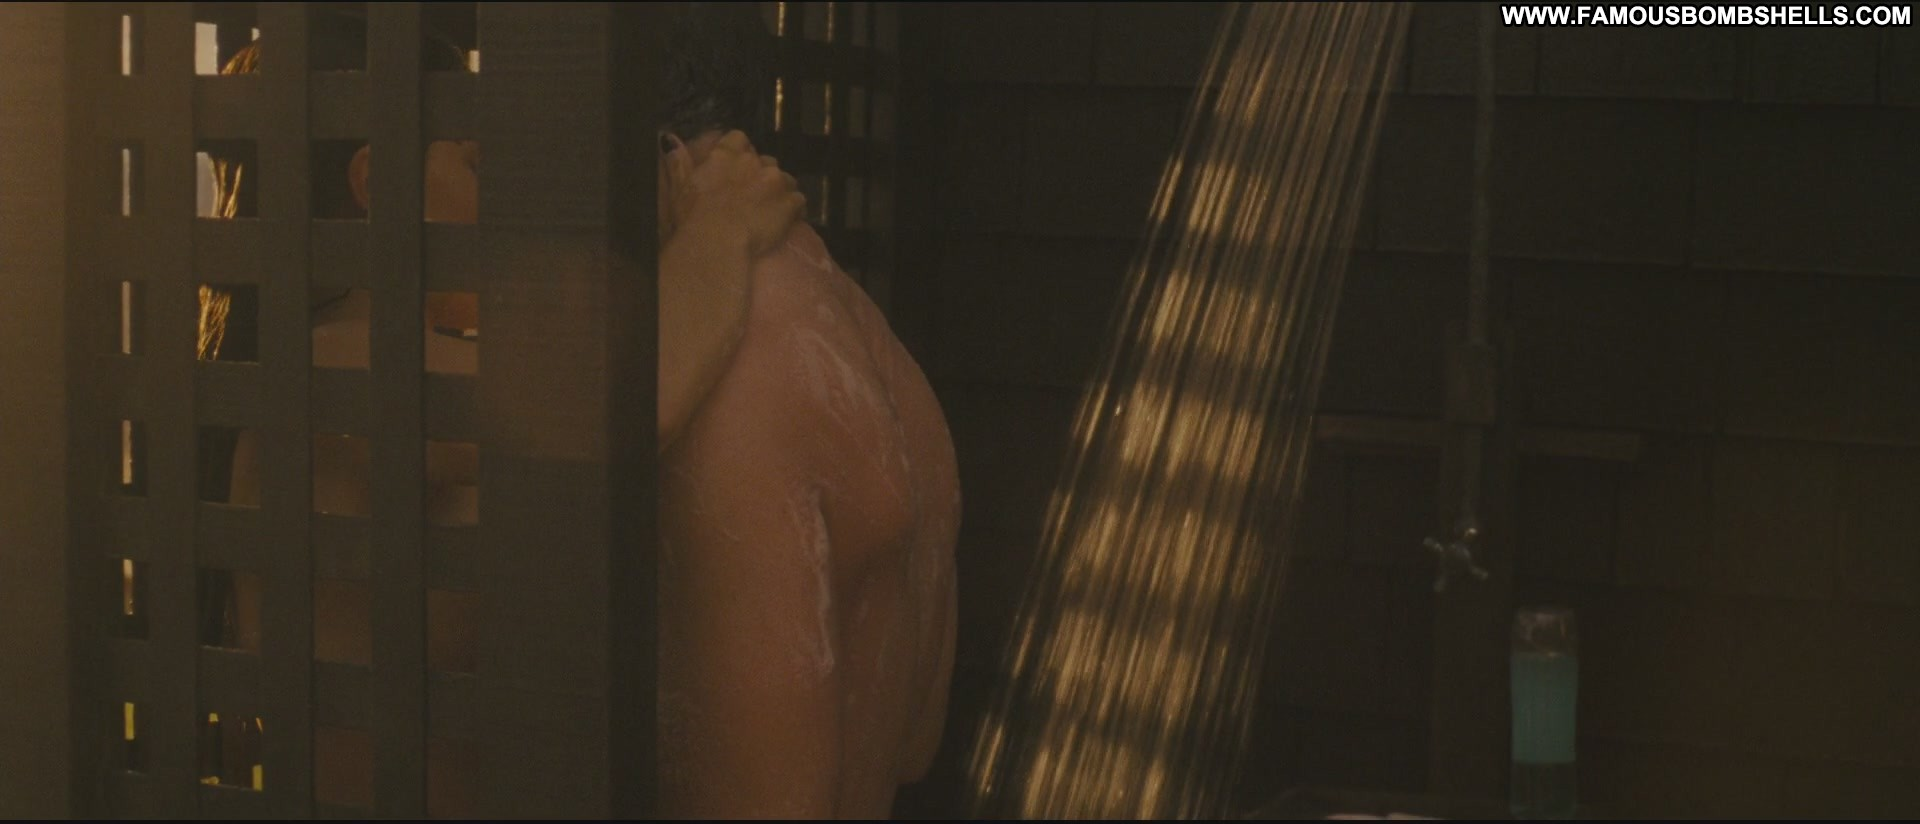 olivia-thirlby-nude-dailymotion-max-payne-tits-pussy